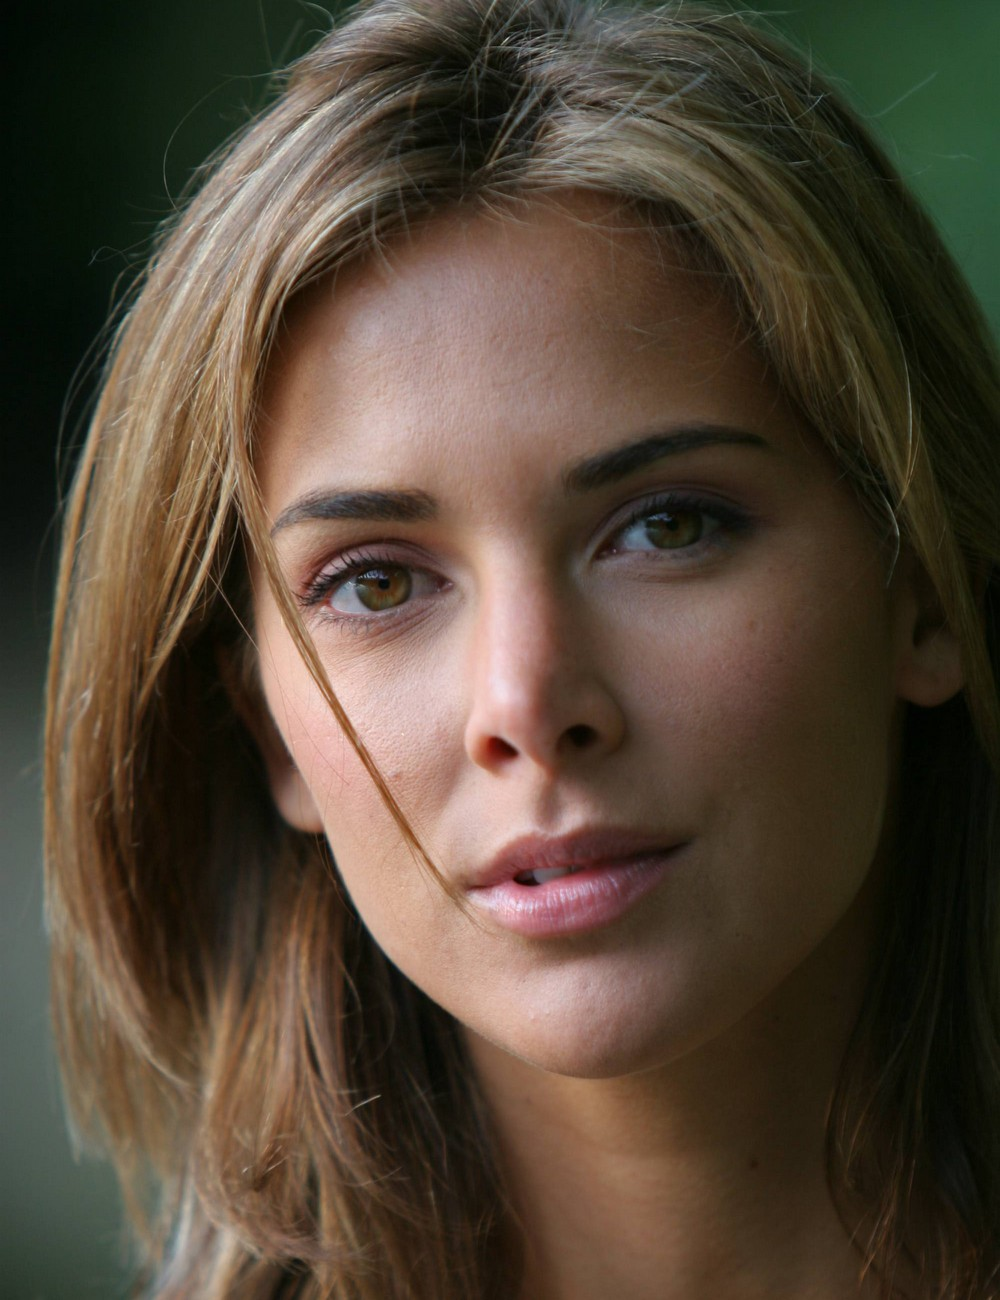 French News Anchor Melissa Theuriau